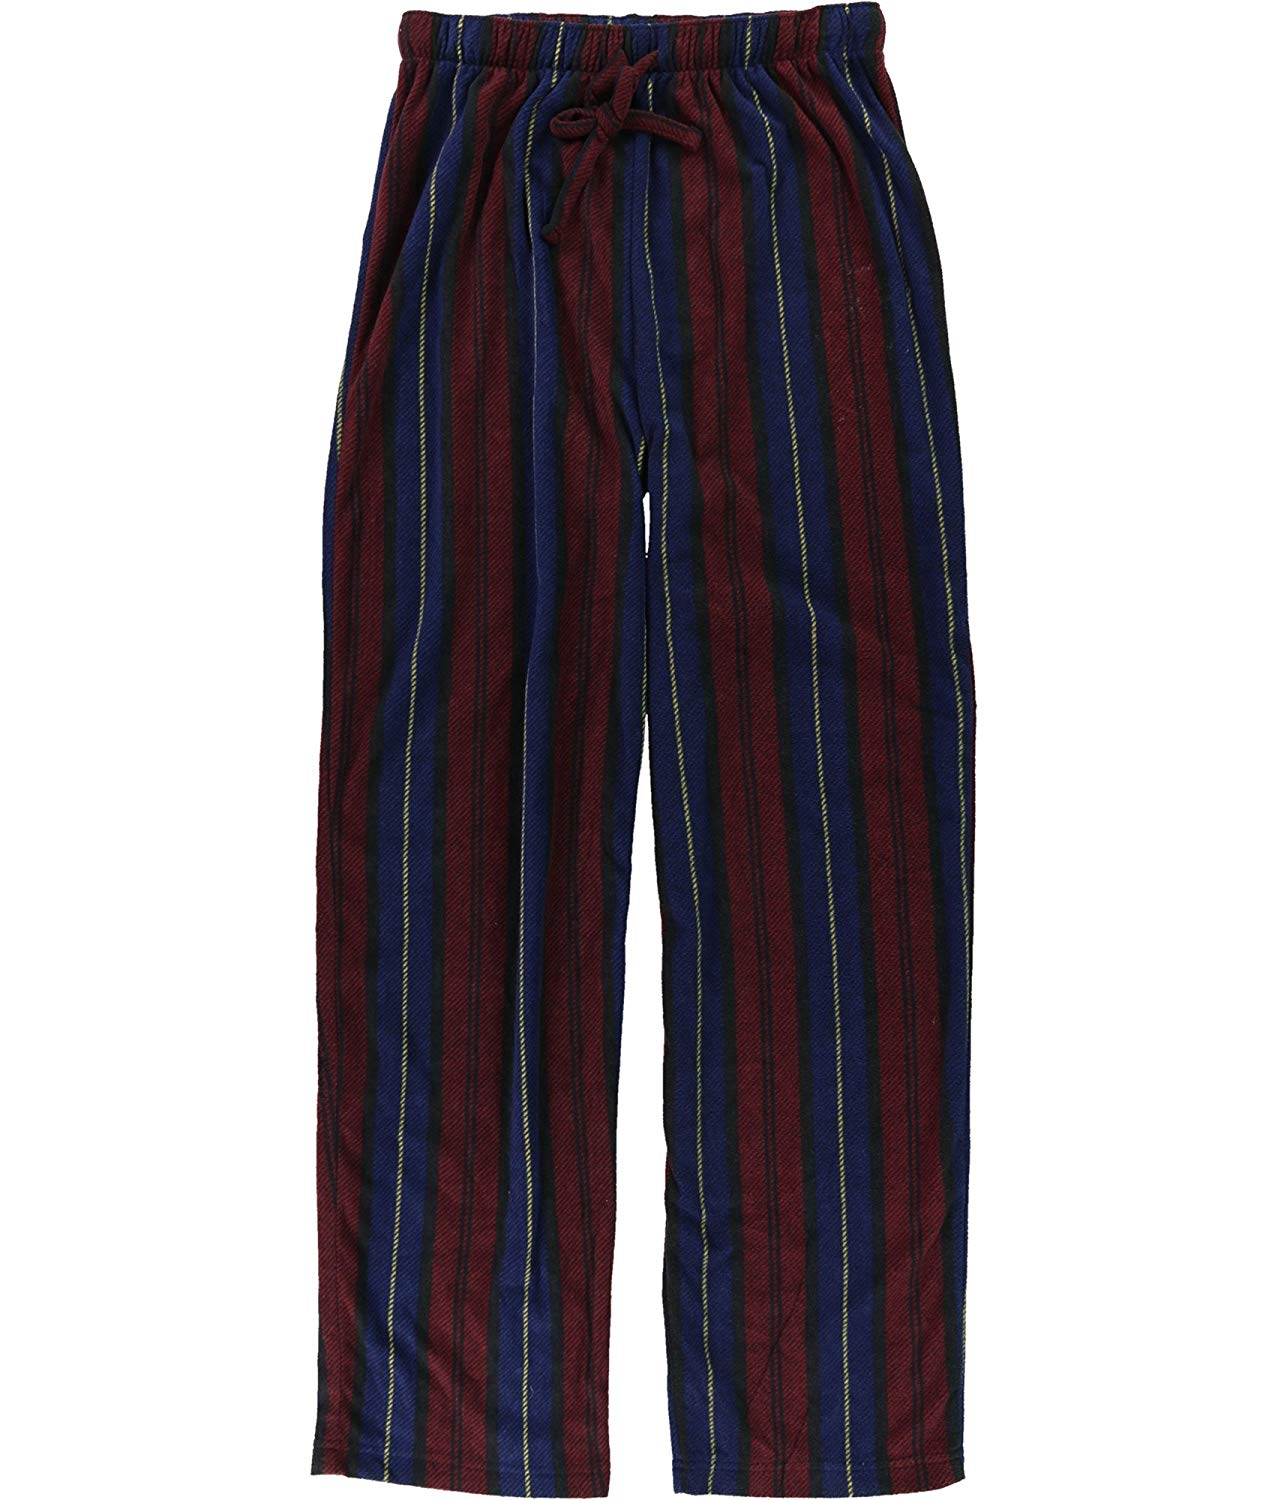 d0d3a5b1df Get Quotations · Club Room Mens Striped Fleece Pajama Lounge Pants